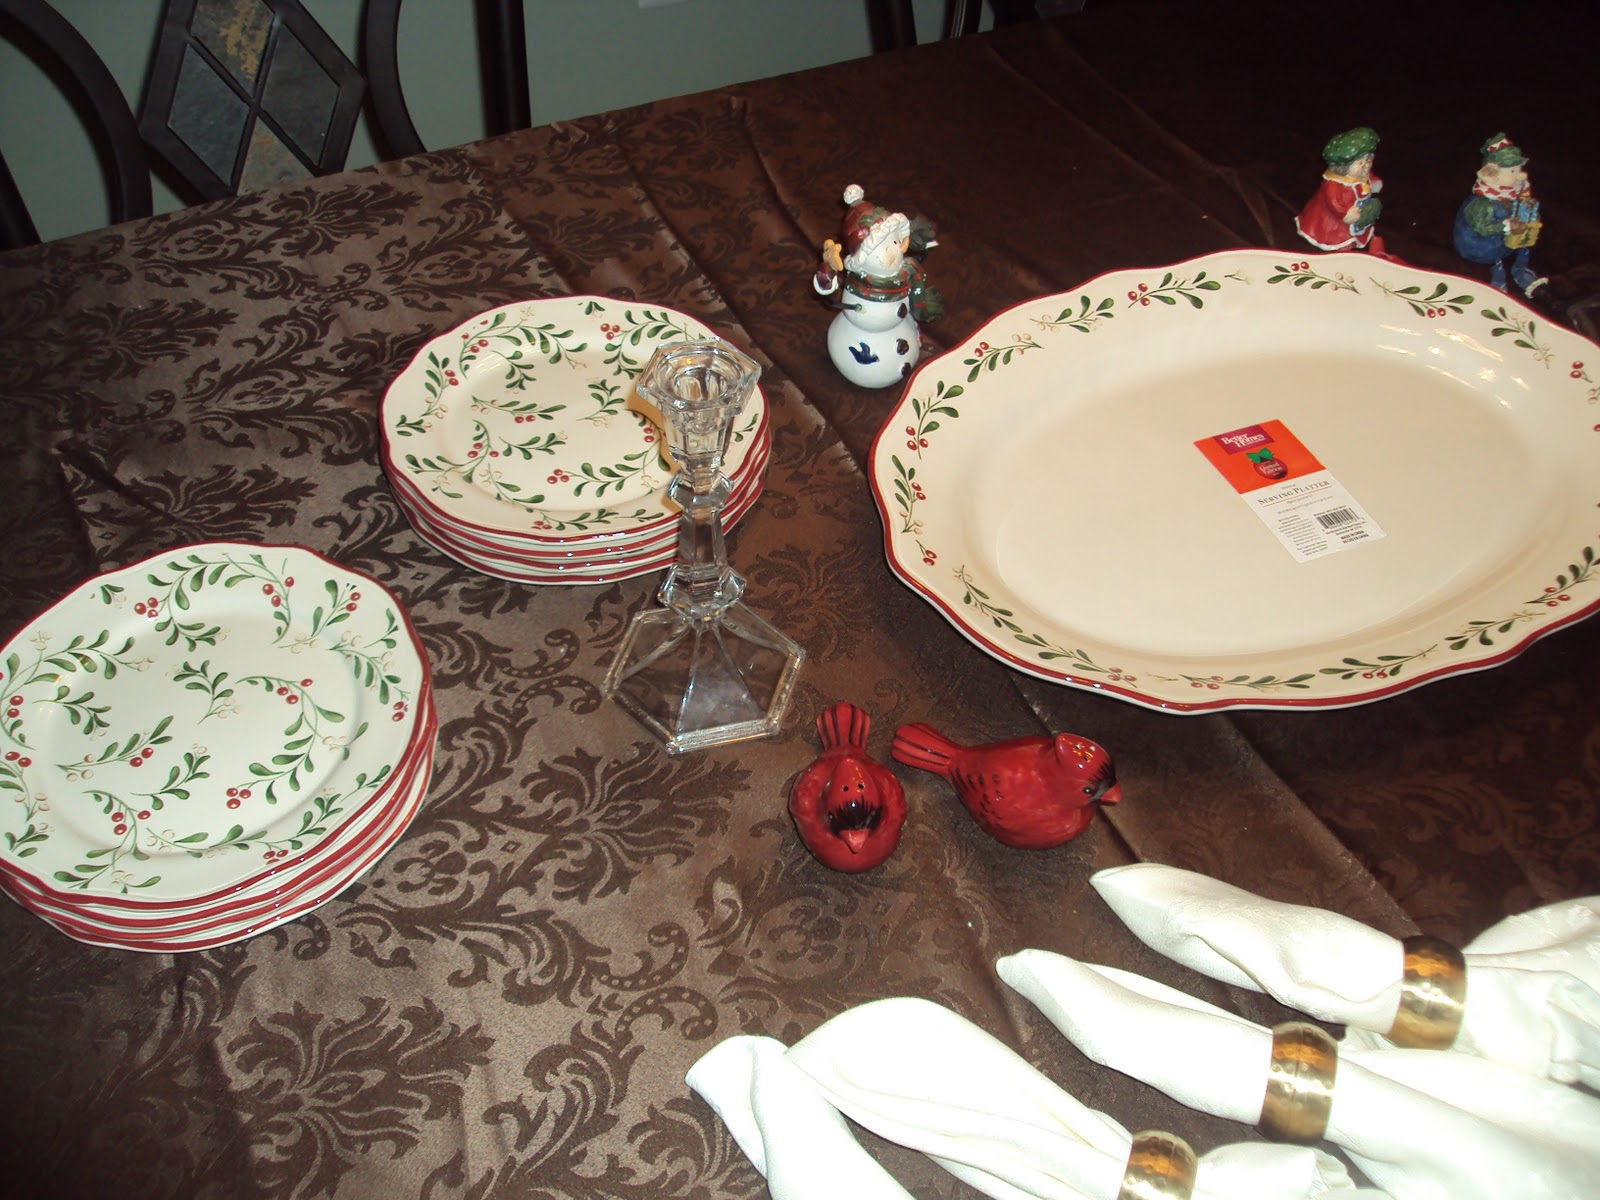 Mission: Locate Holiday Dinnerware By Better Homes U0026 Gardens, Wal Mart